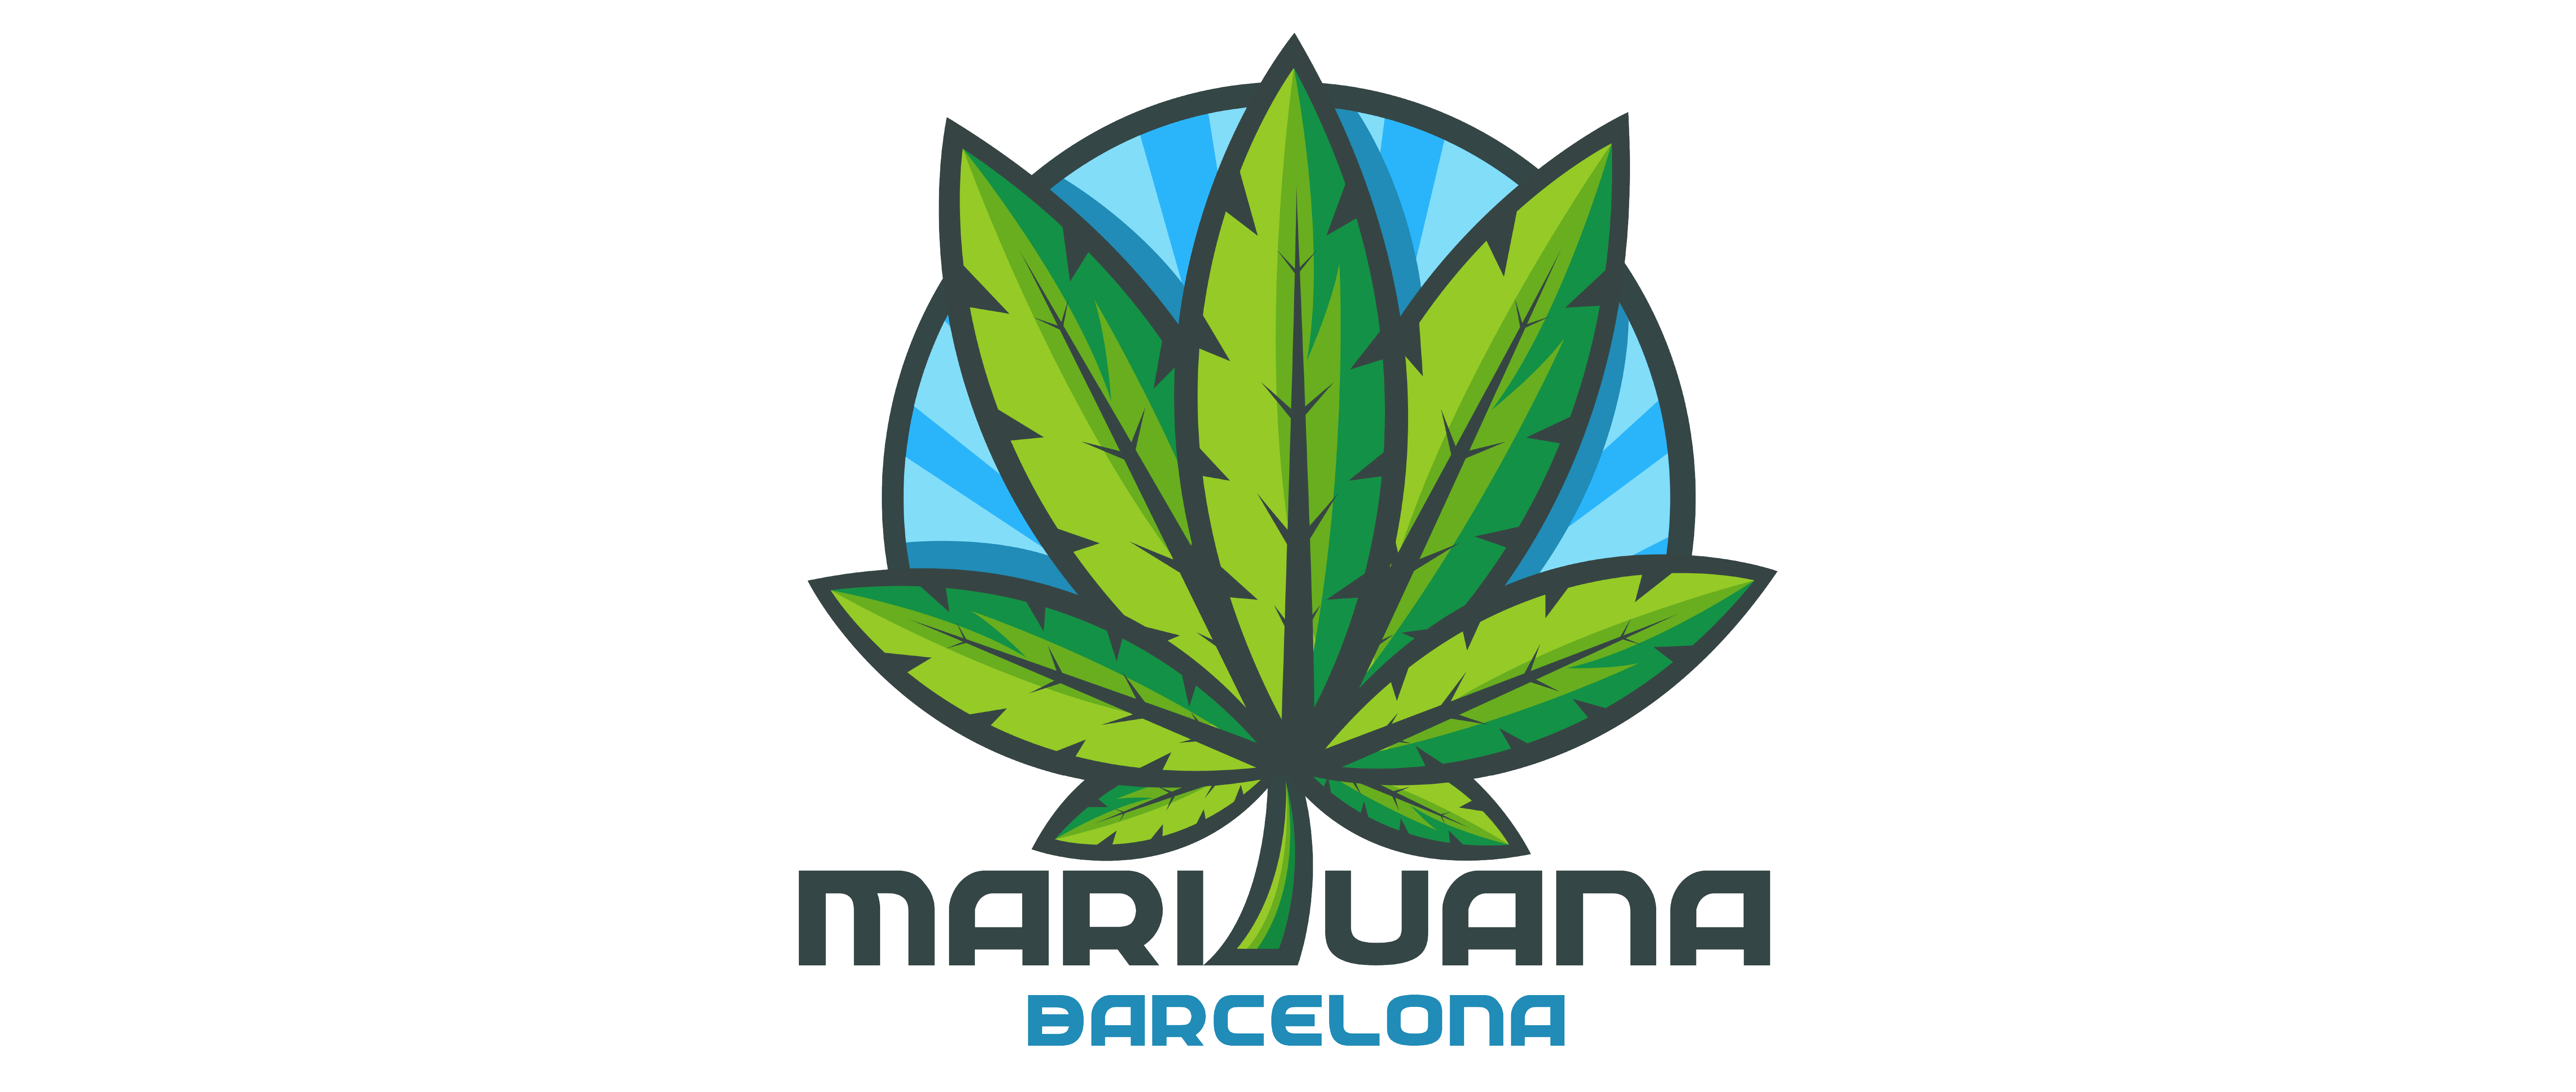 Marijuana Barcelona | Weed Girls